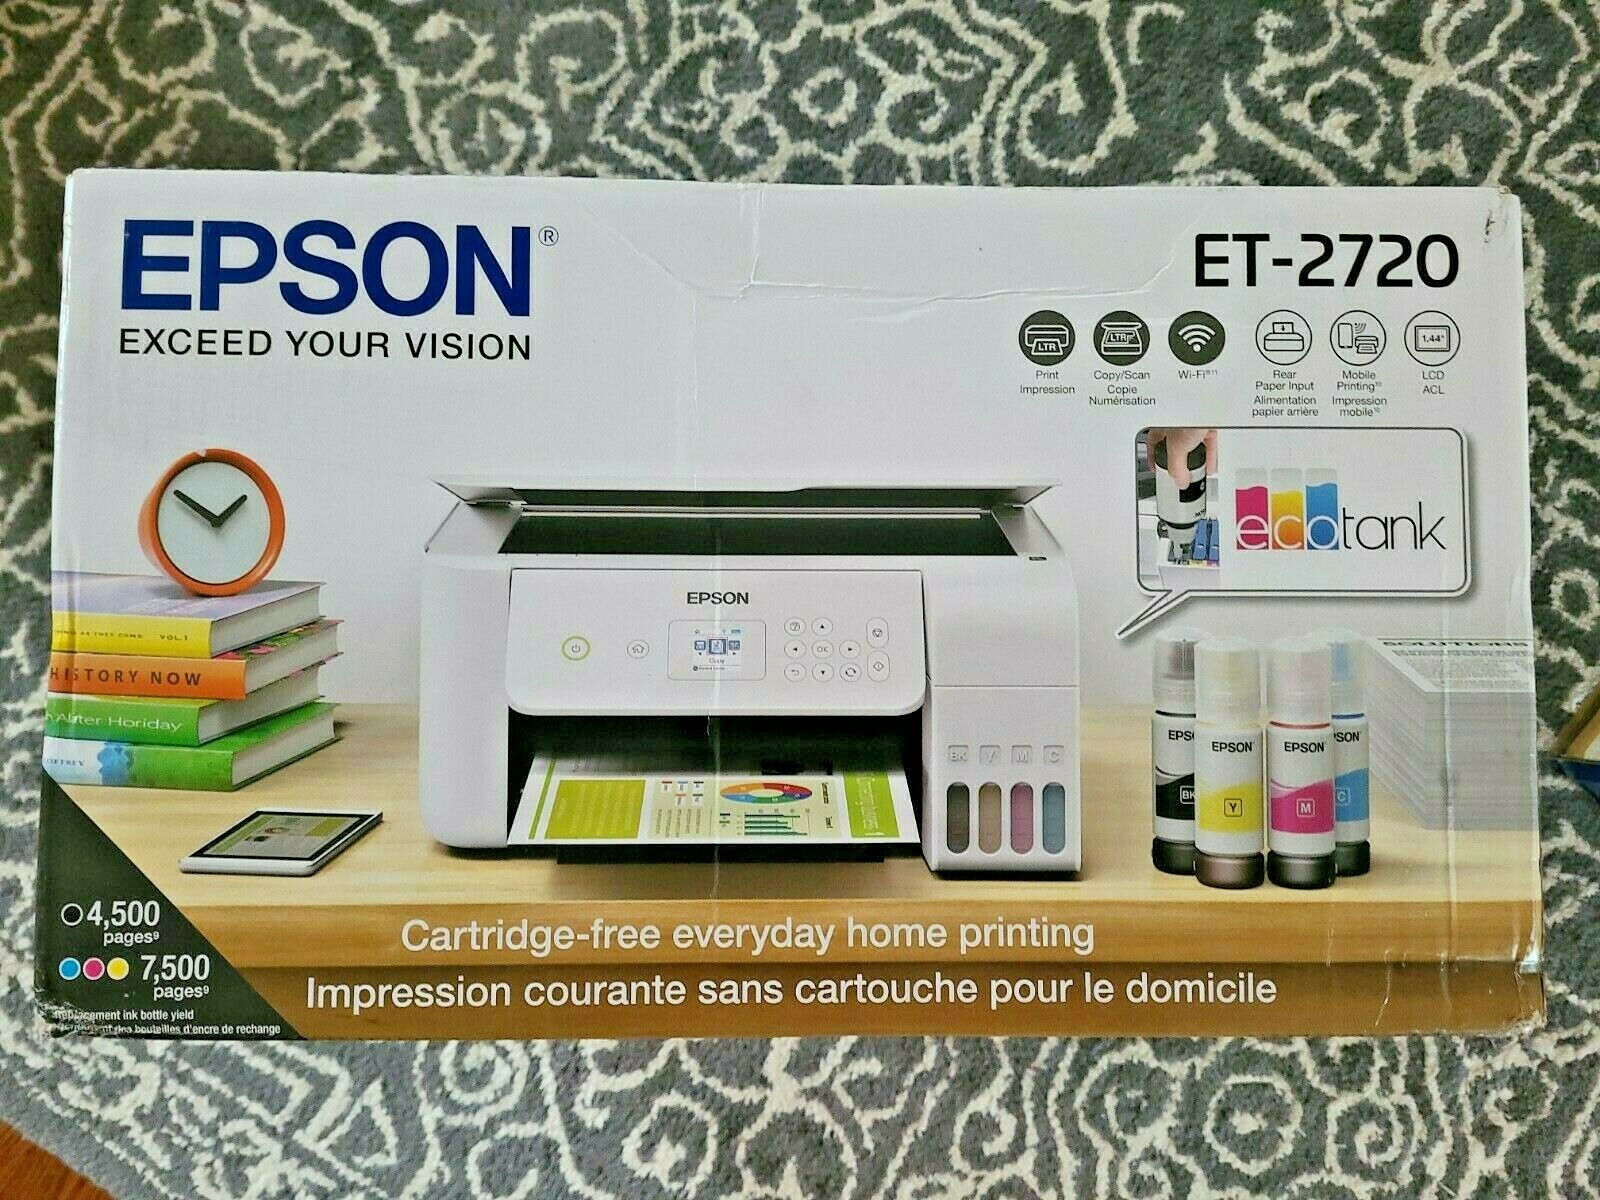 Brand New WHITE Epson ECOTANK ET-2720 Wireless All-In-One Color Printer BNIB. Buy it now for 259.75